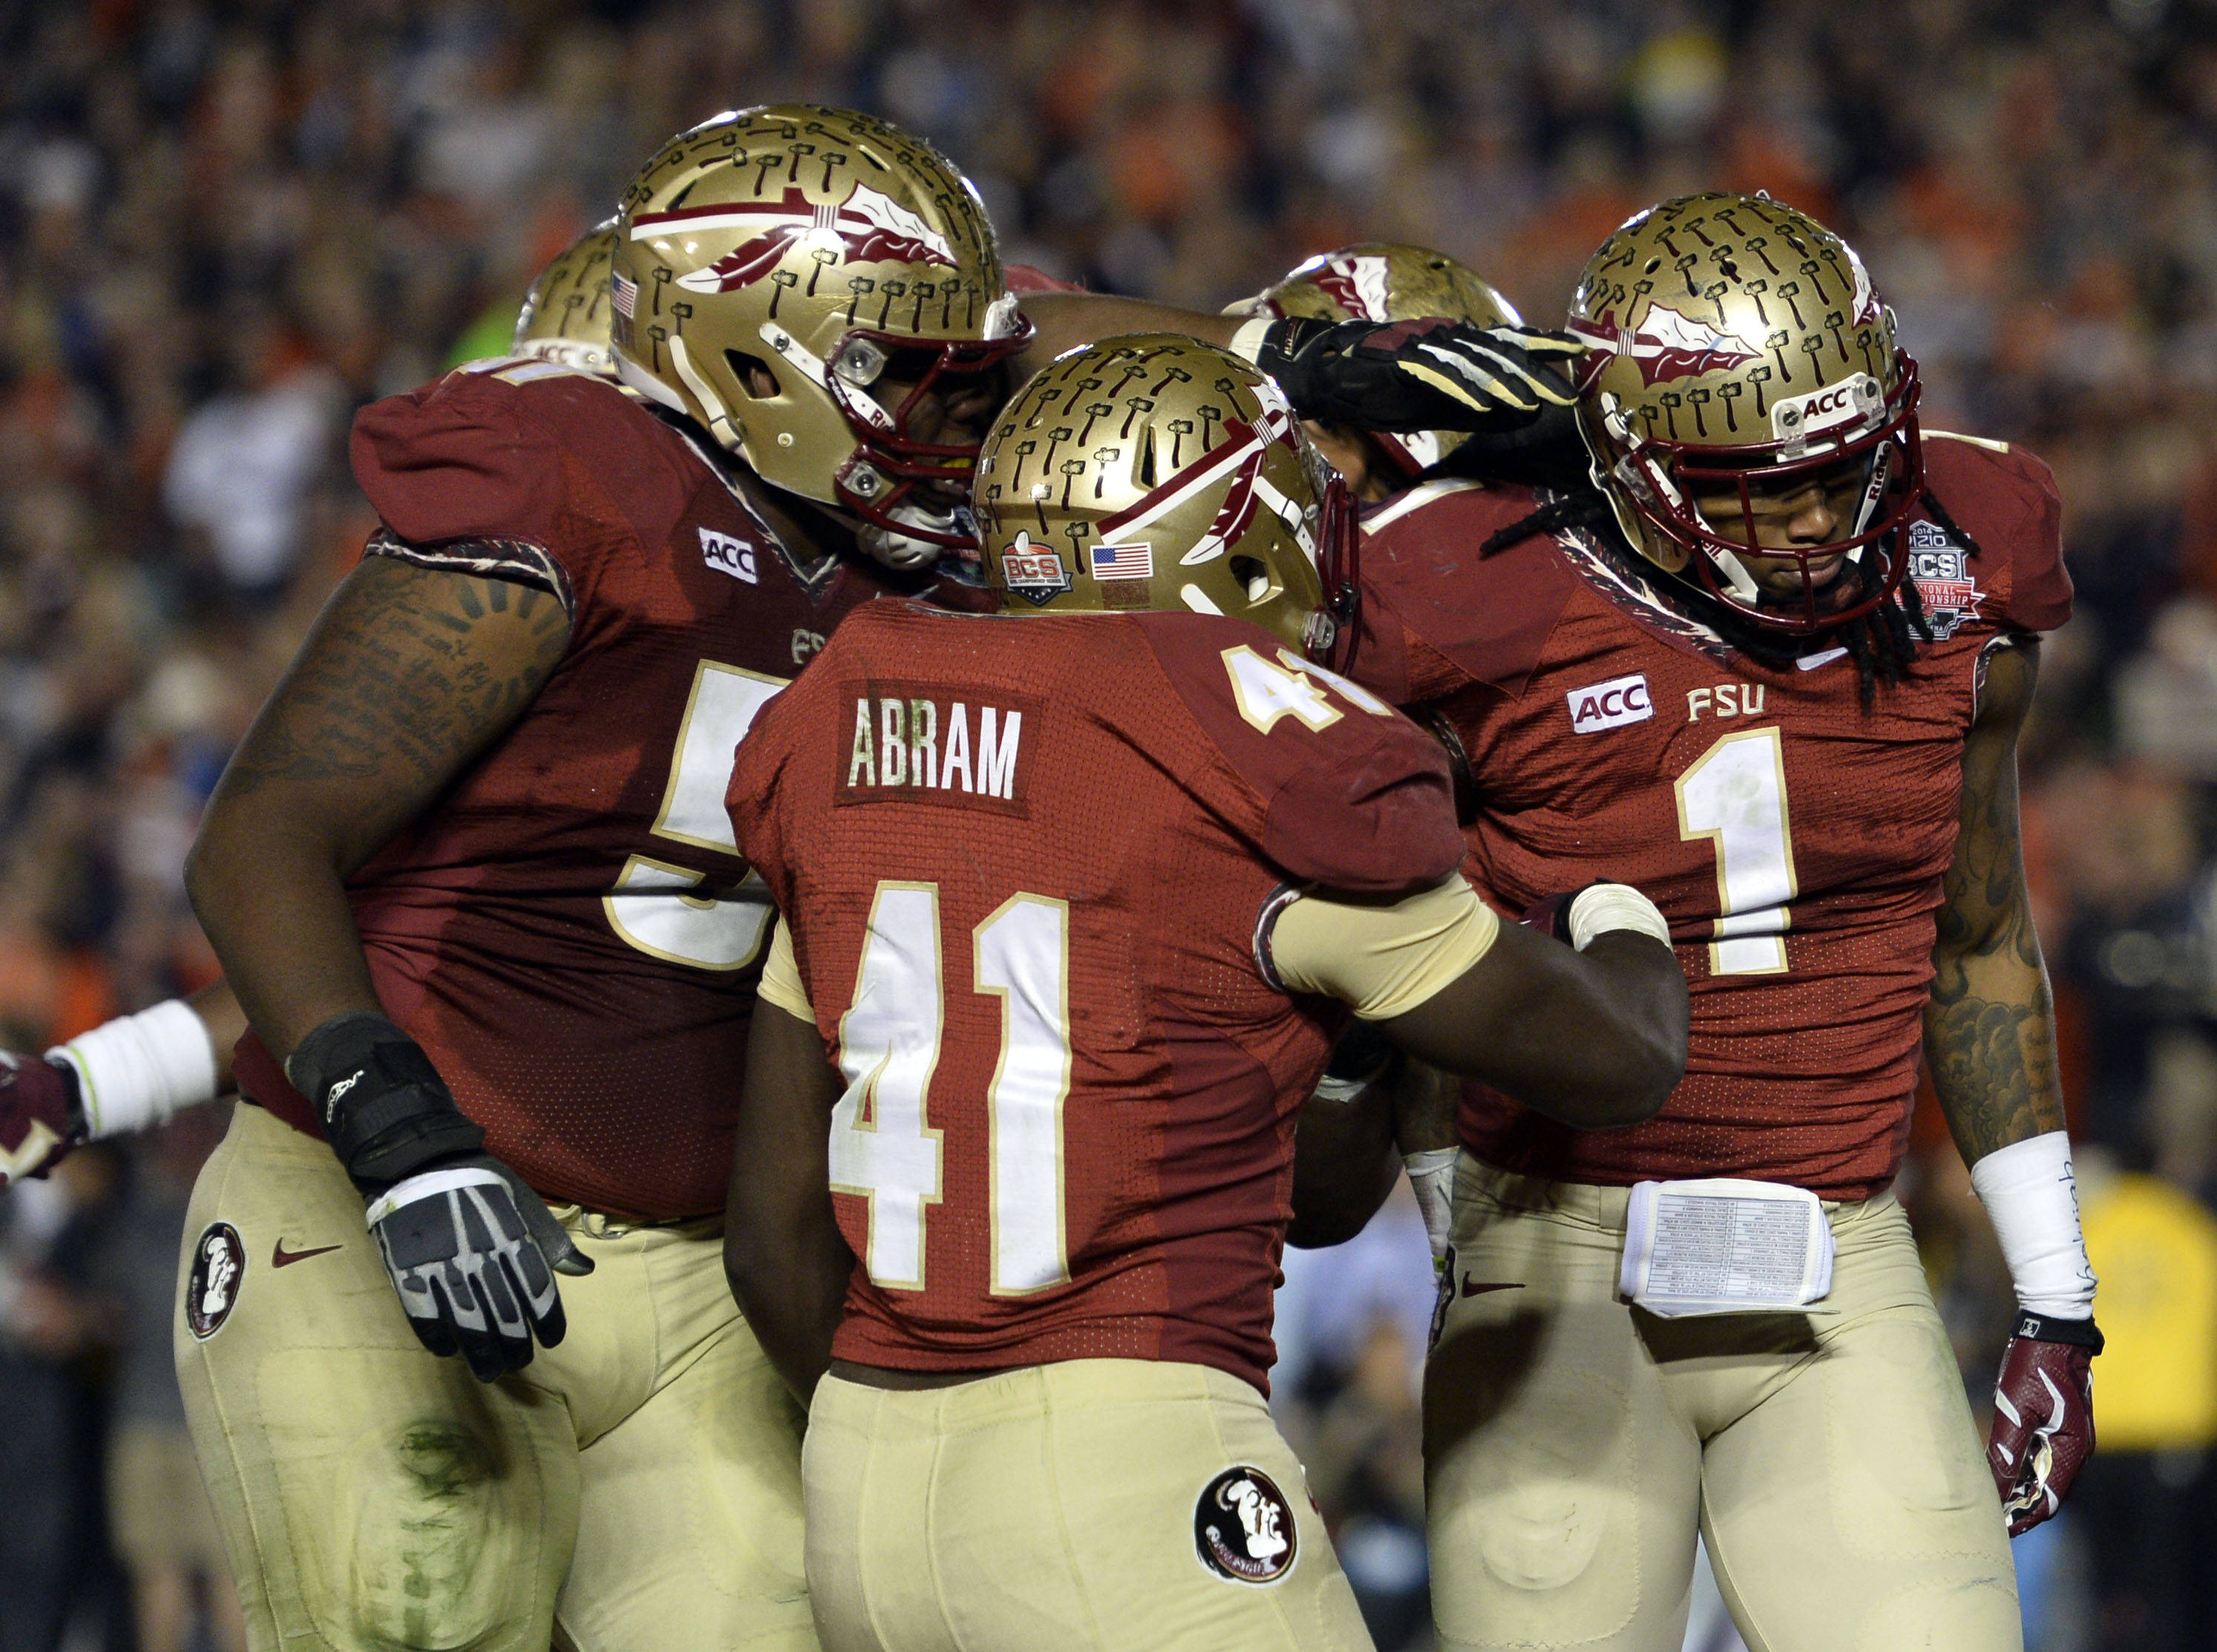 Jan 6, 2014; Pasadena, CA, USA; Florida State Seminoles wide receiver Kelvin Benjamin (1) celebrates with teammates after scoring a touchdown against the Auburn Tigers during the second half of the 2014 BCS National Championship game at the Rose Bowl.  Mandatory Credit: Robert Hanashiro-USA TODAY Sports